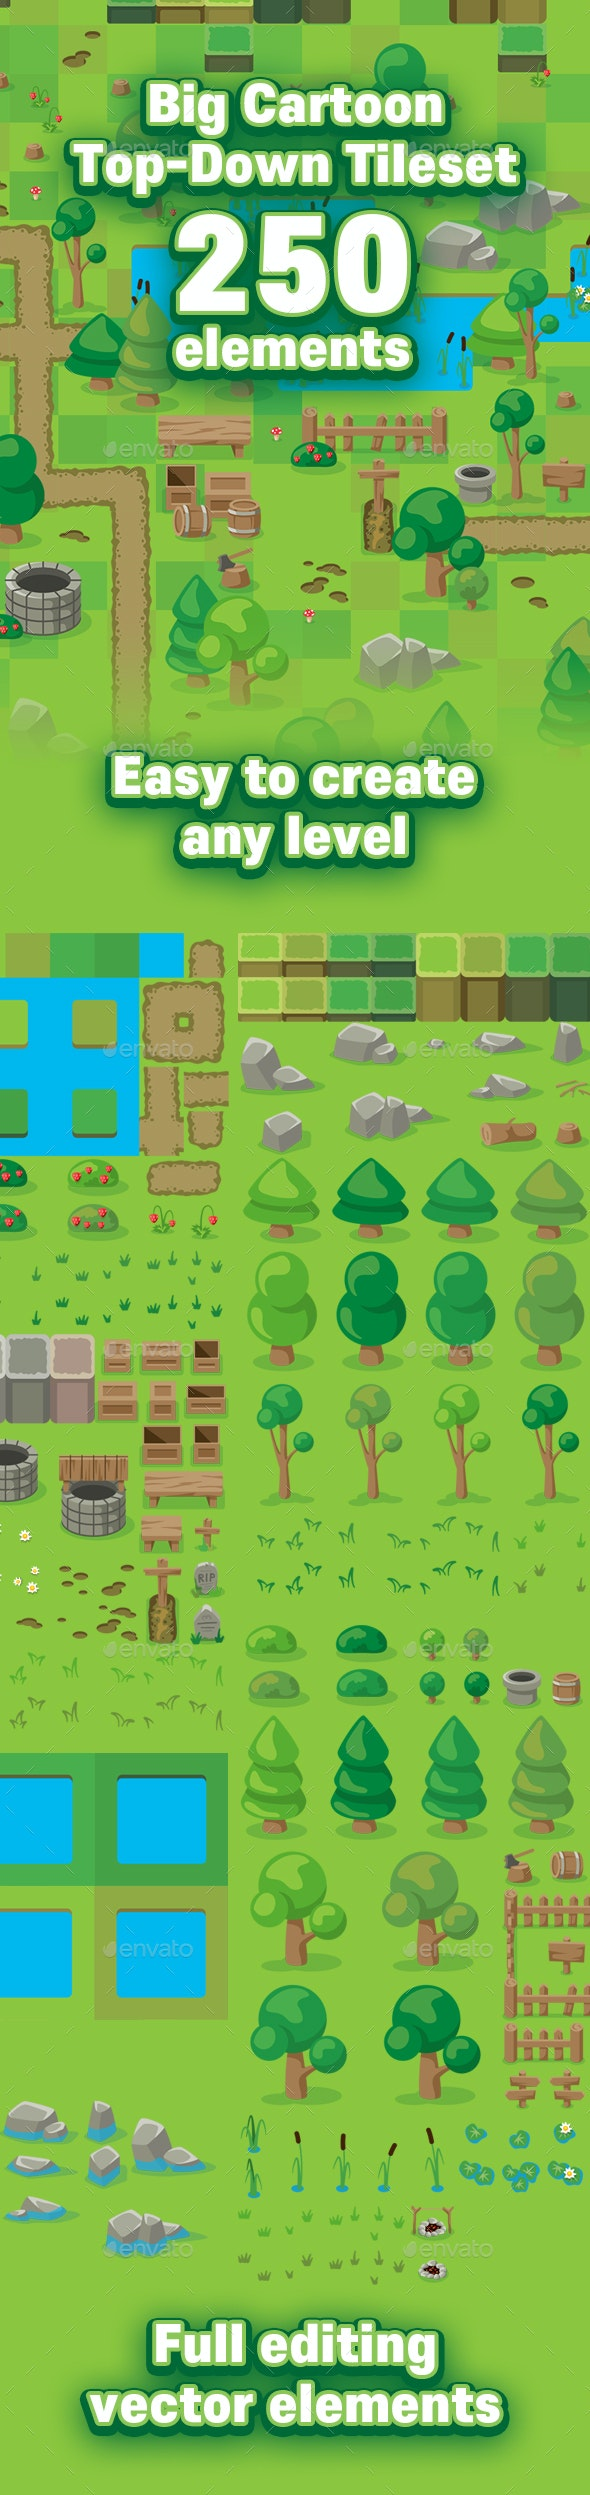 Cartoon Game Top Down Tileset by cobectbhax | GraphicRiver